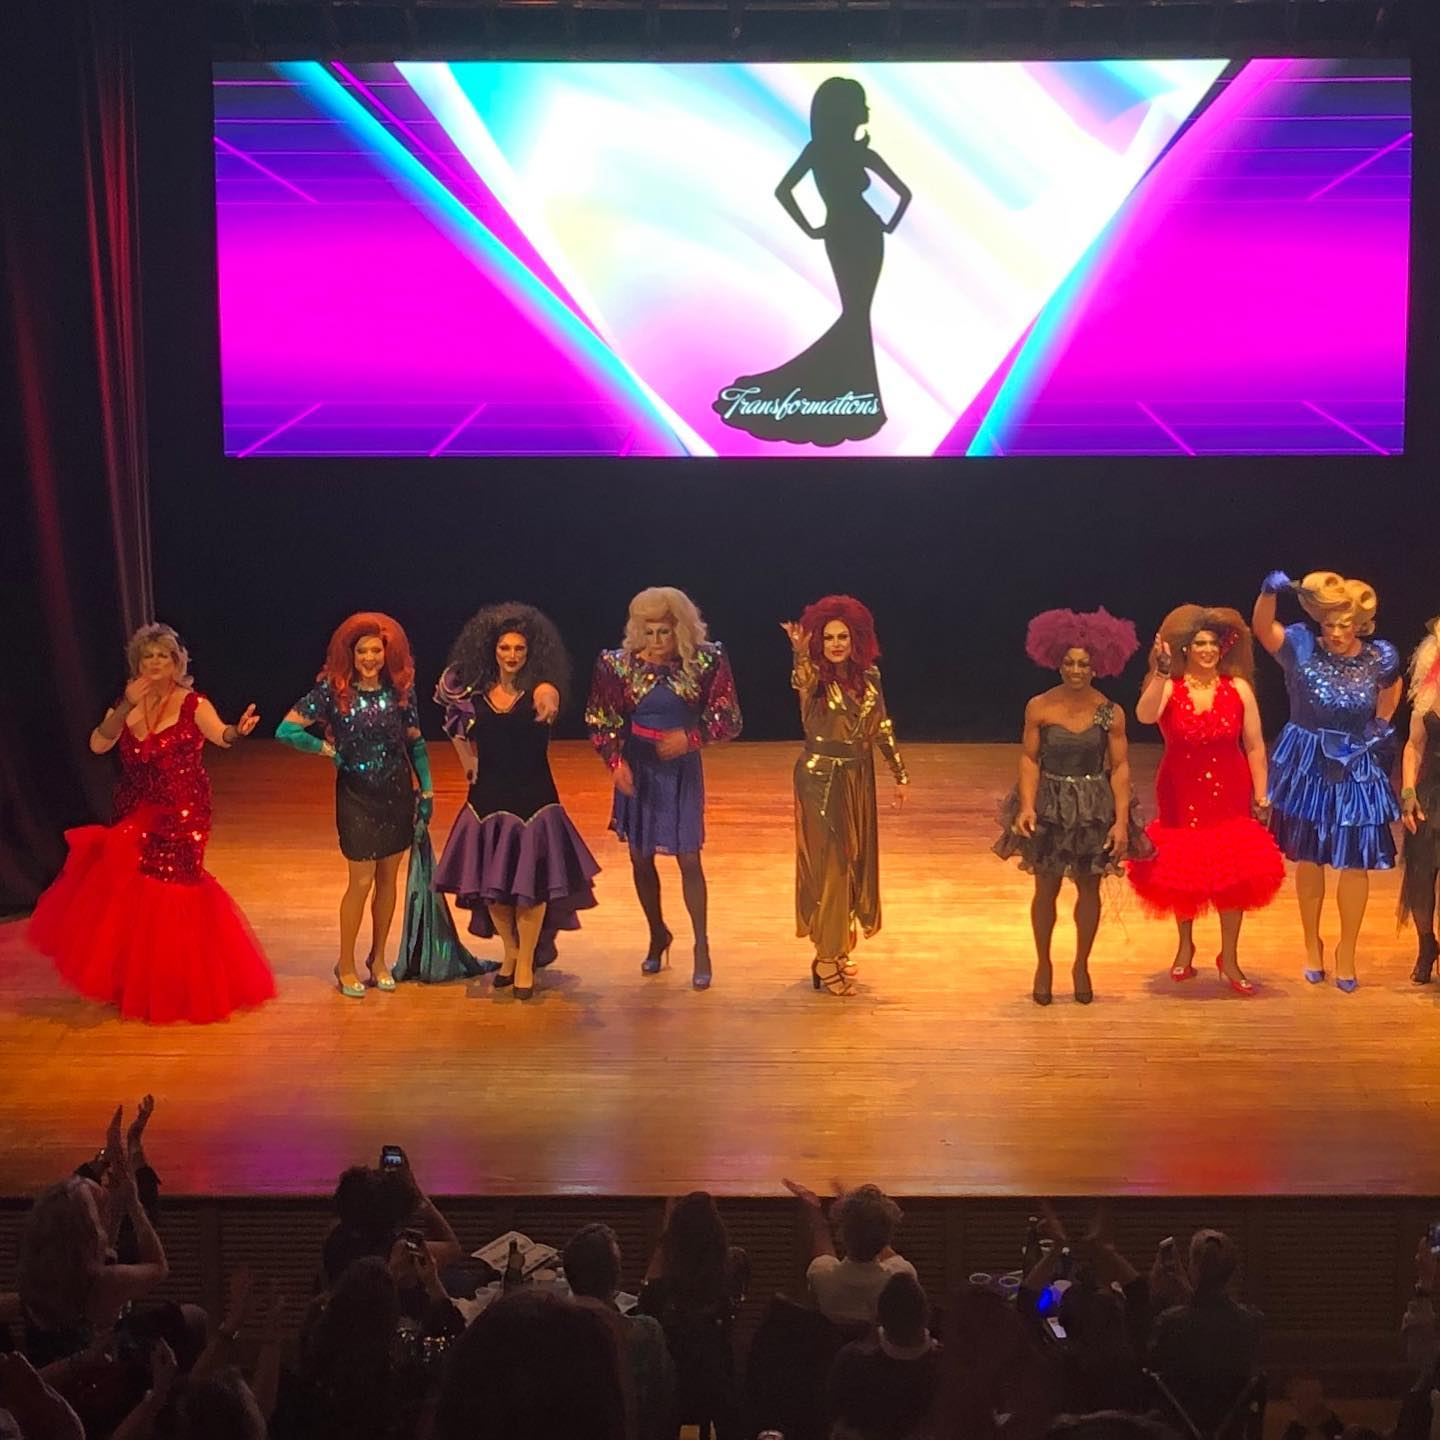 A group of drag queens pose on stage